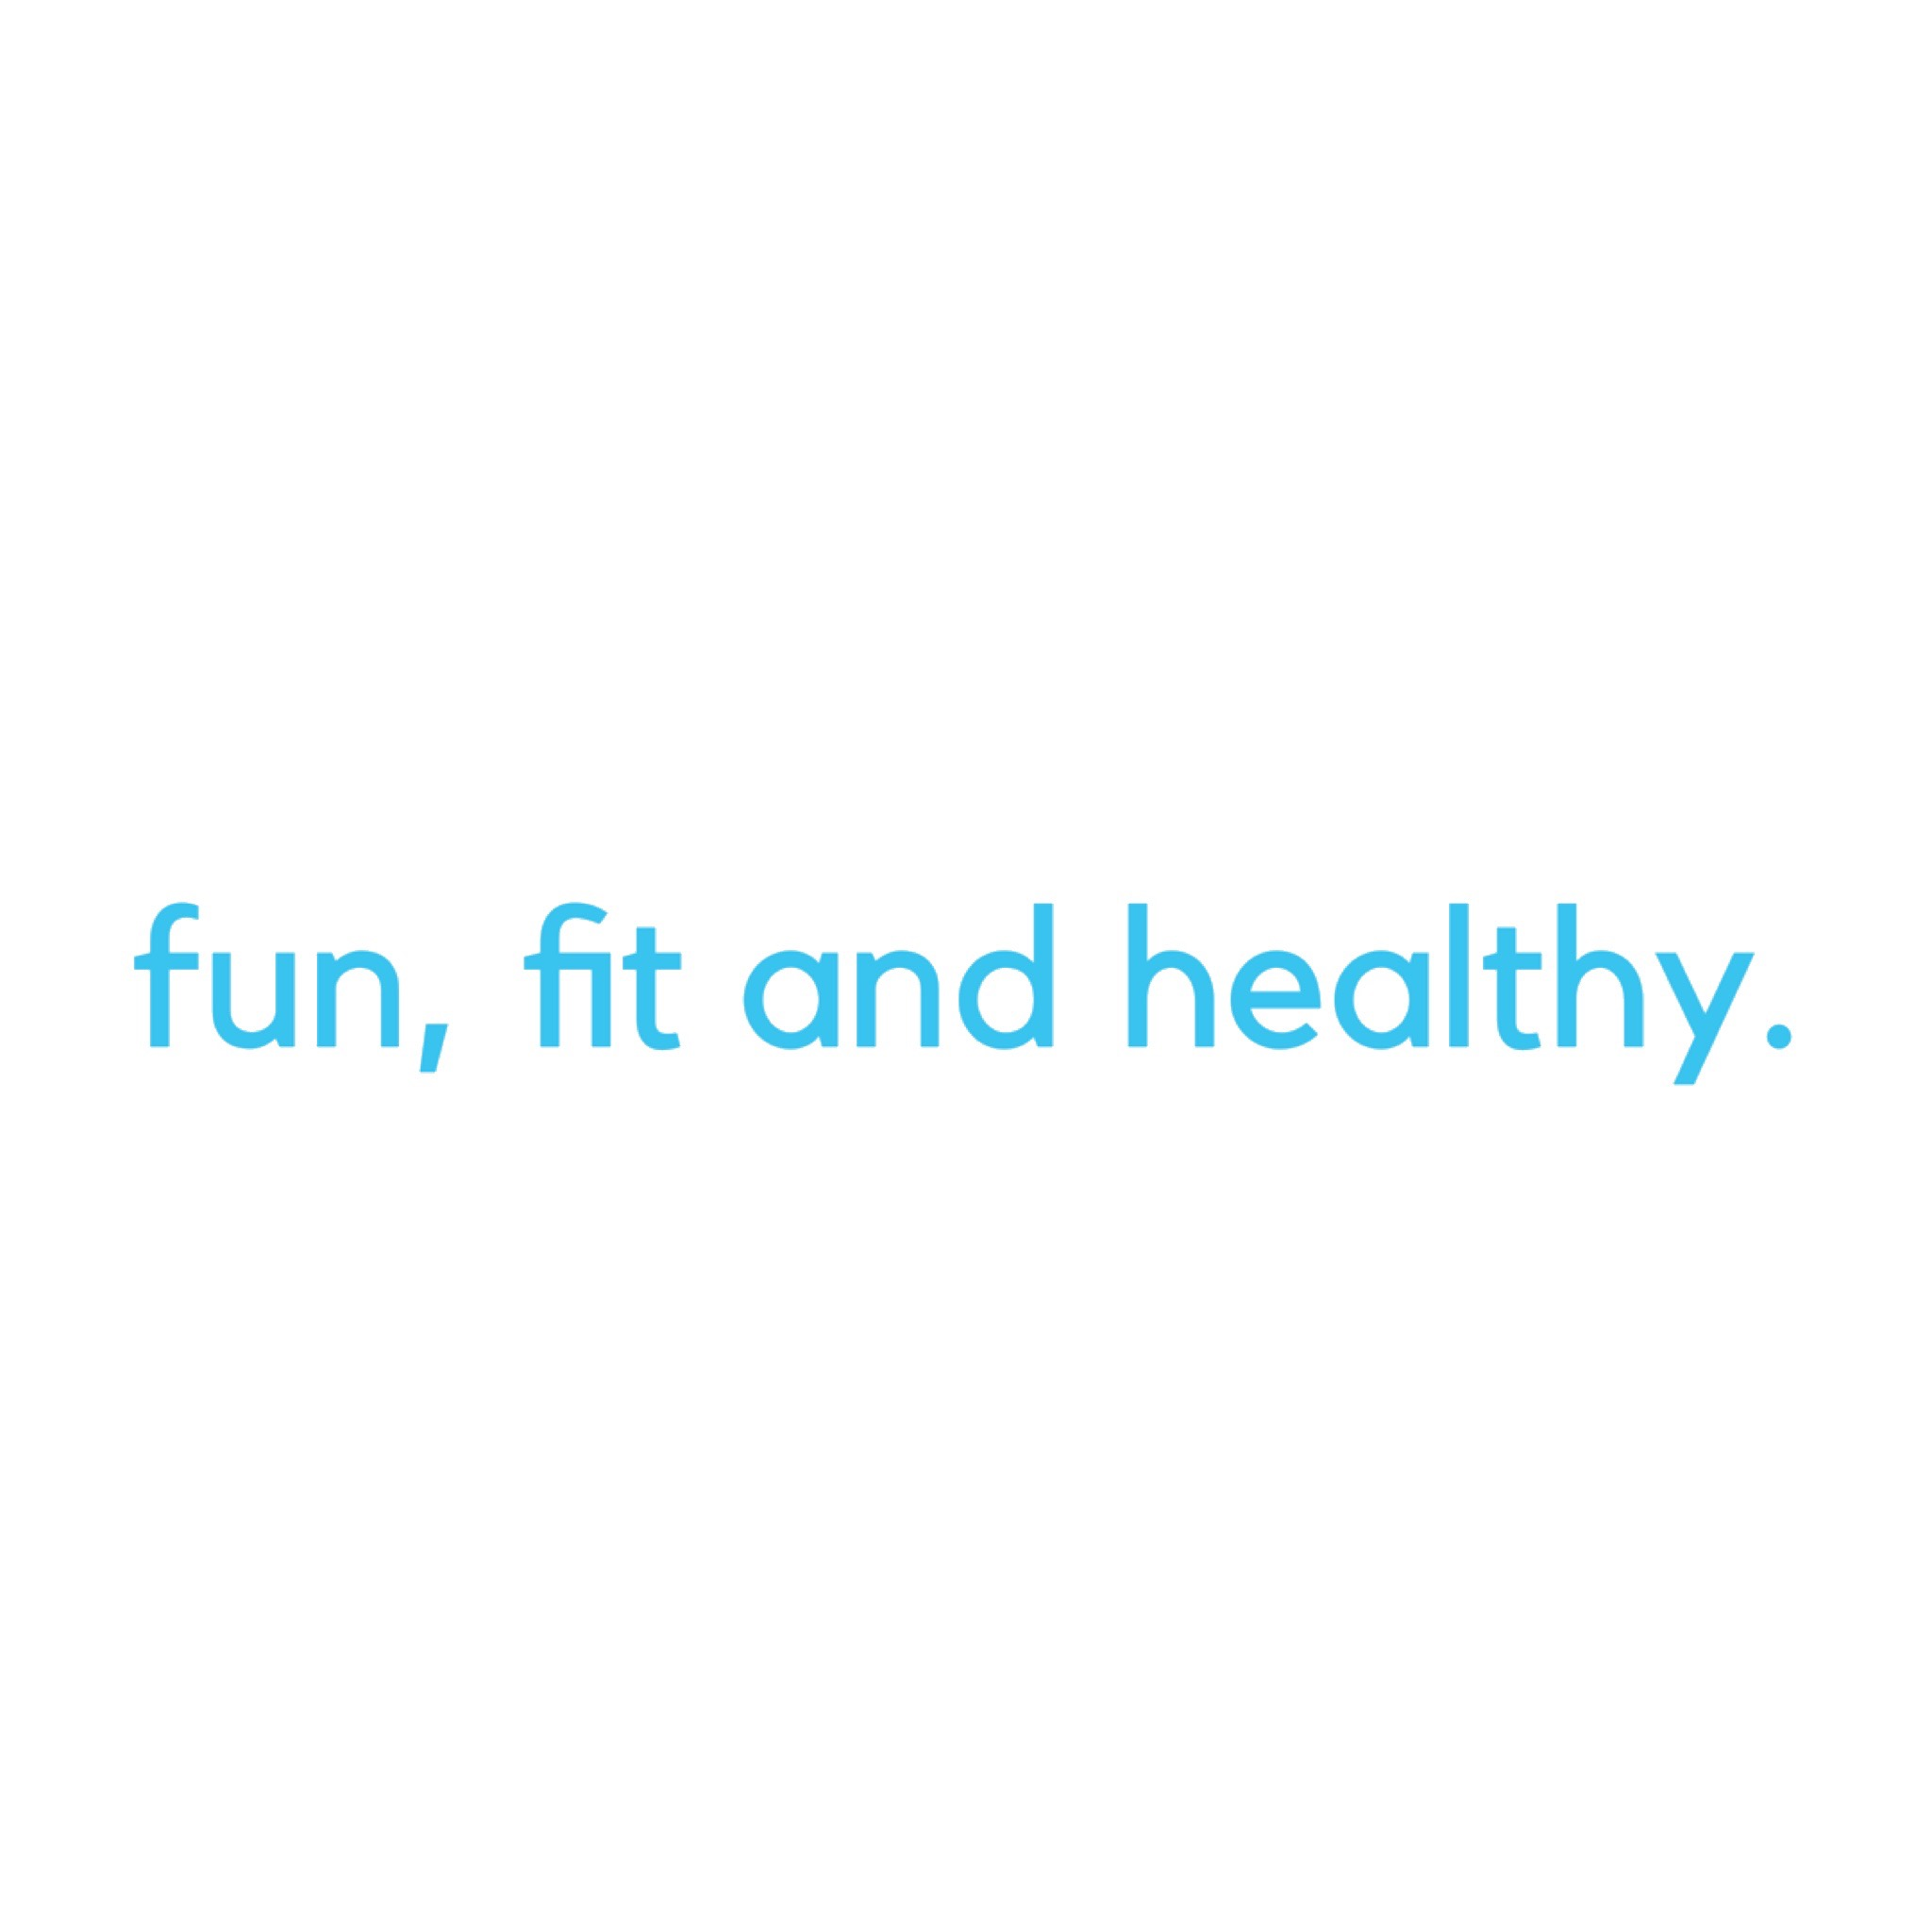 Fun, Fit and Healthy Stickers messages sticker-9